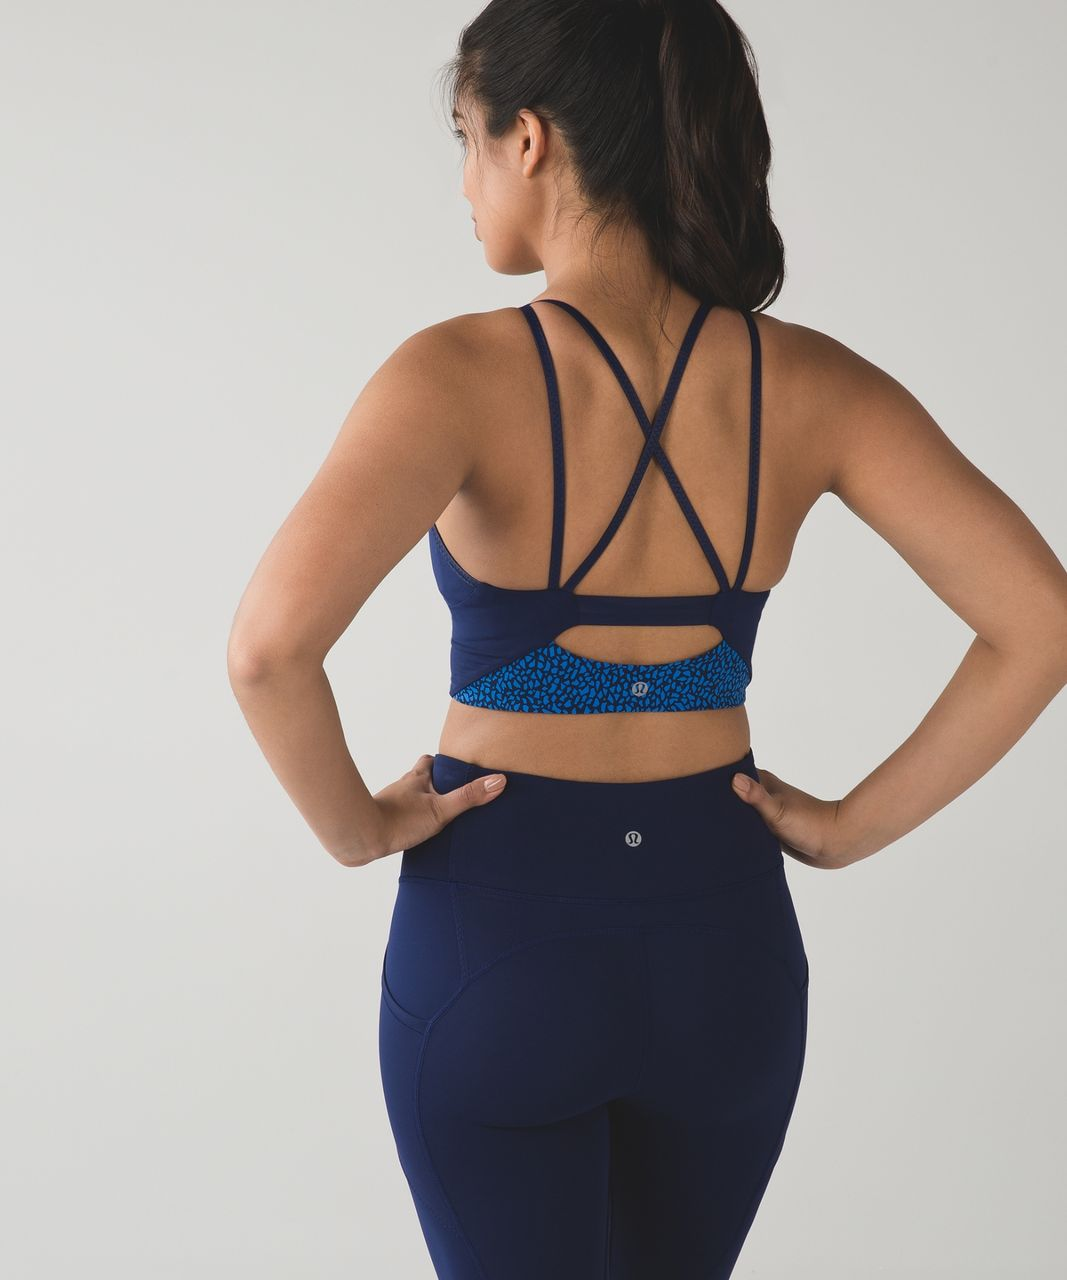 Lululemon Clip-In Long Line Bra - Miss Mosaic Lakeside Blue Hero Blue / Hero Blue